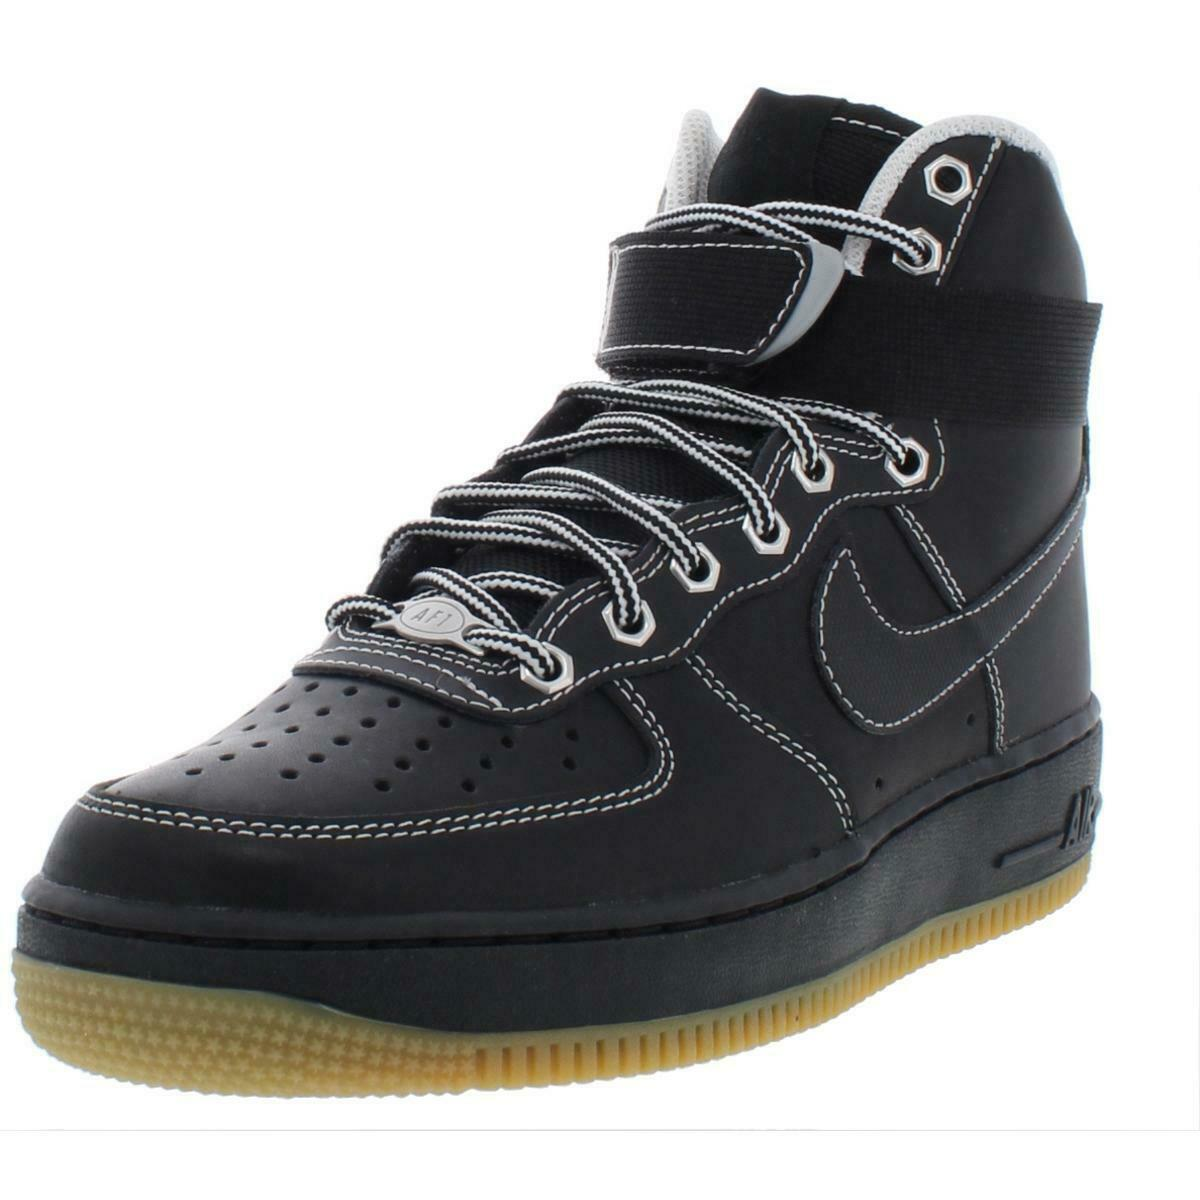 Nike herr Air Force 1 High 07 läder High Top Athletic skor skor BHFO 4121